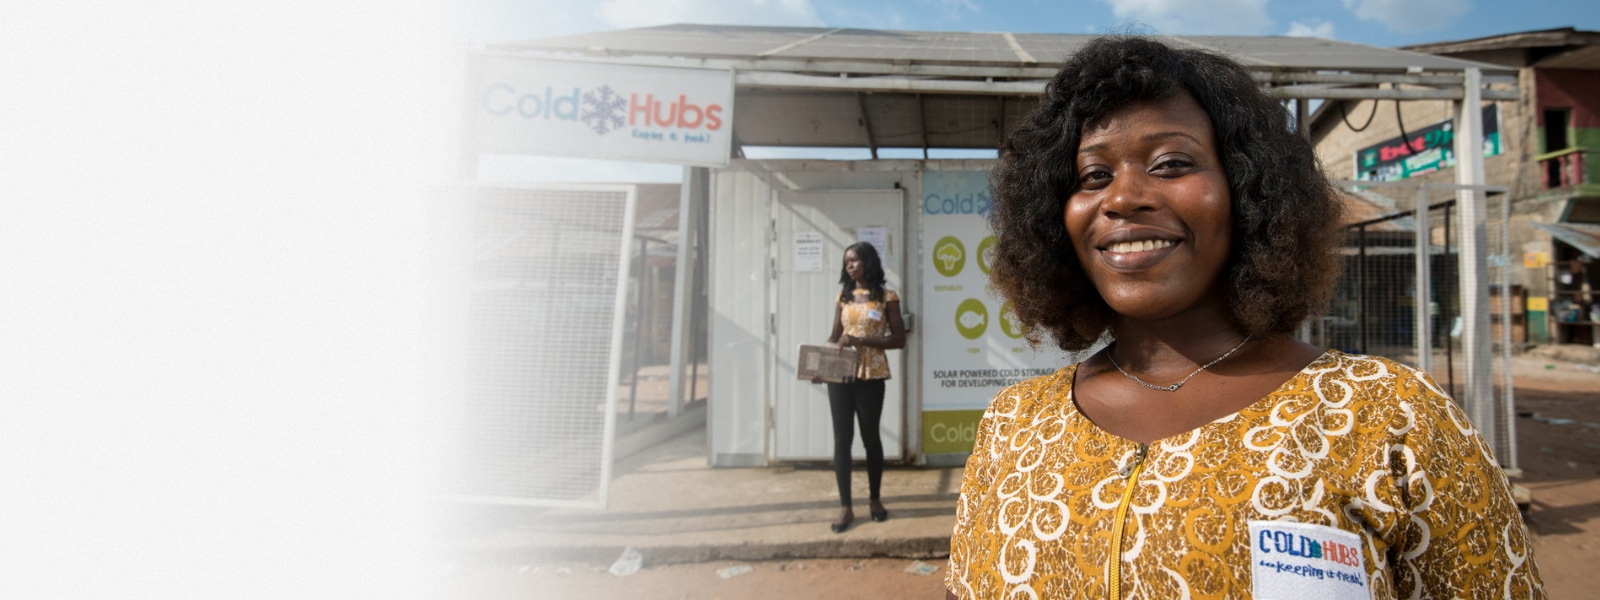 A woman from ColdHubs, one of the recipients of the Microsoft Airband Grant Fund, stands and smiles.